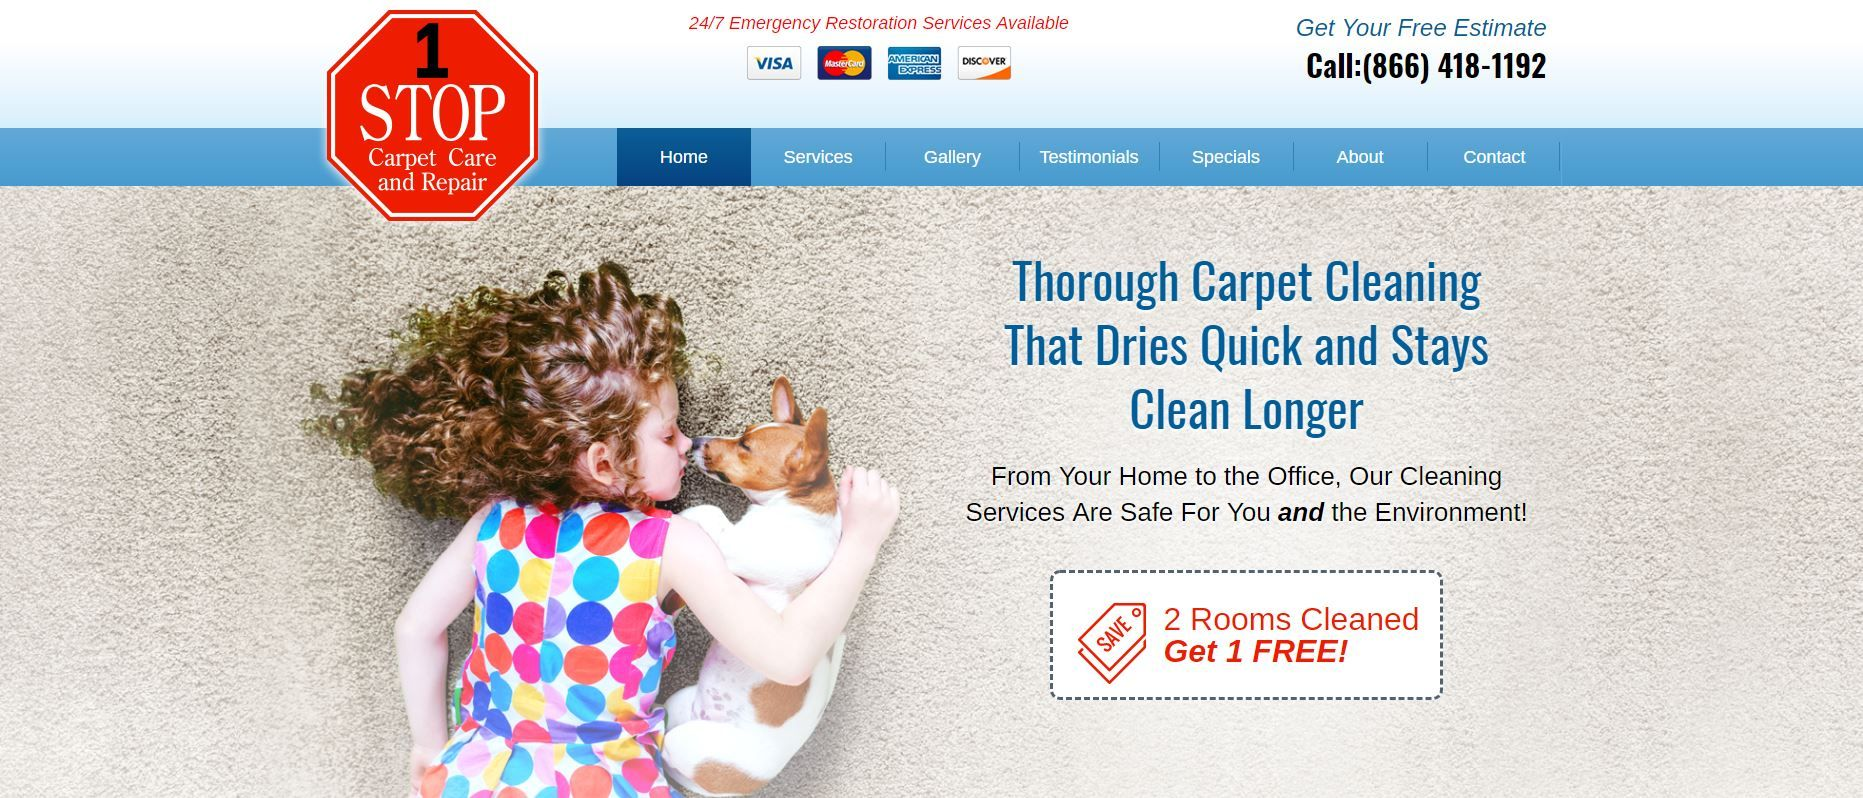 One Stop Carpet Care And Repair Services Carpet Cleaning Quote How To Clean Carpet Carpet Care